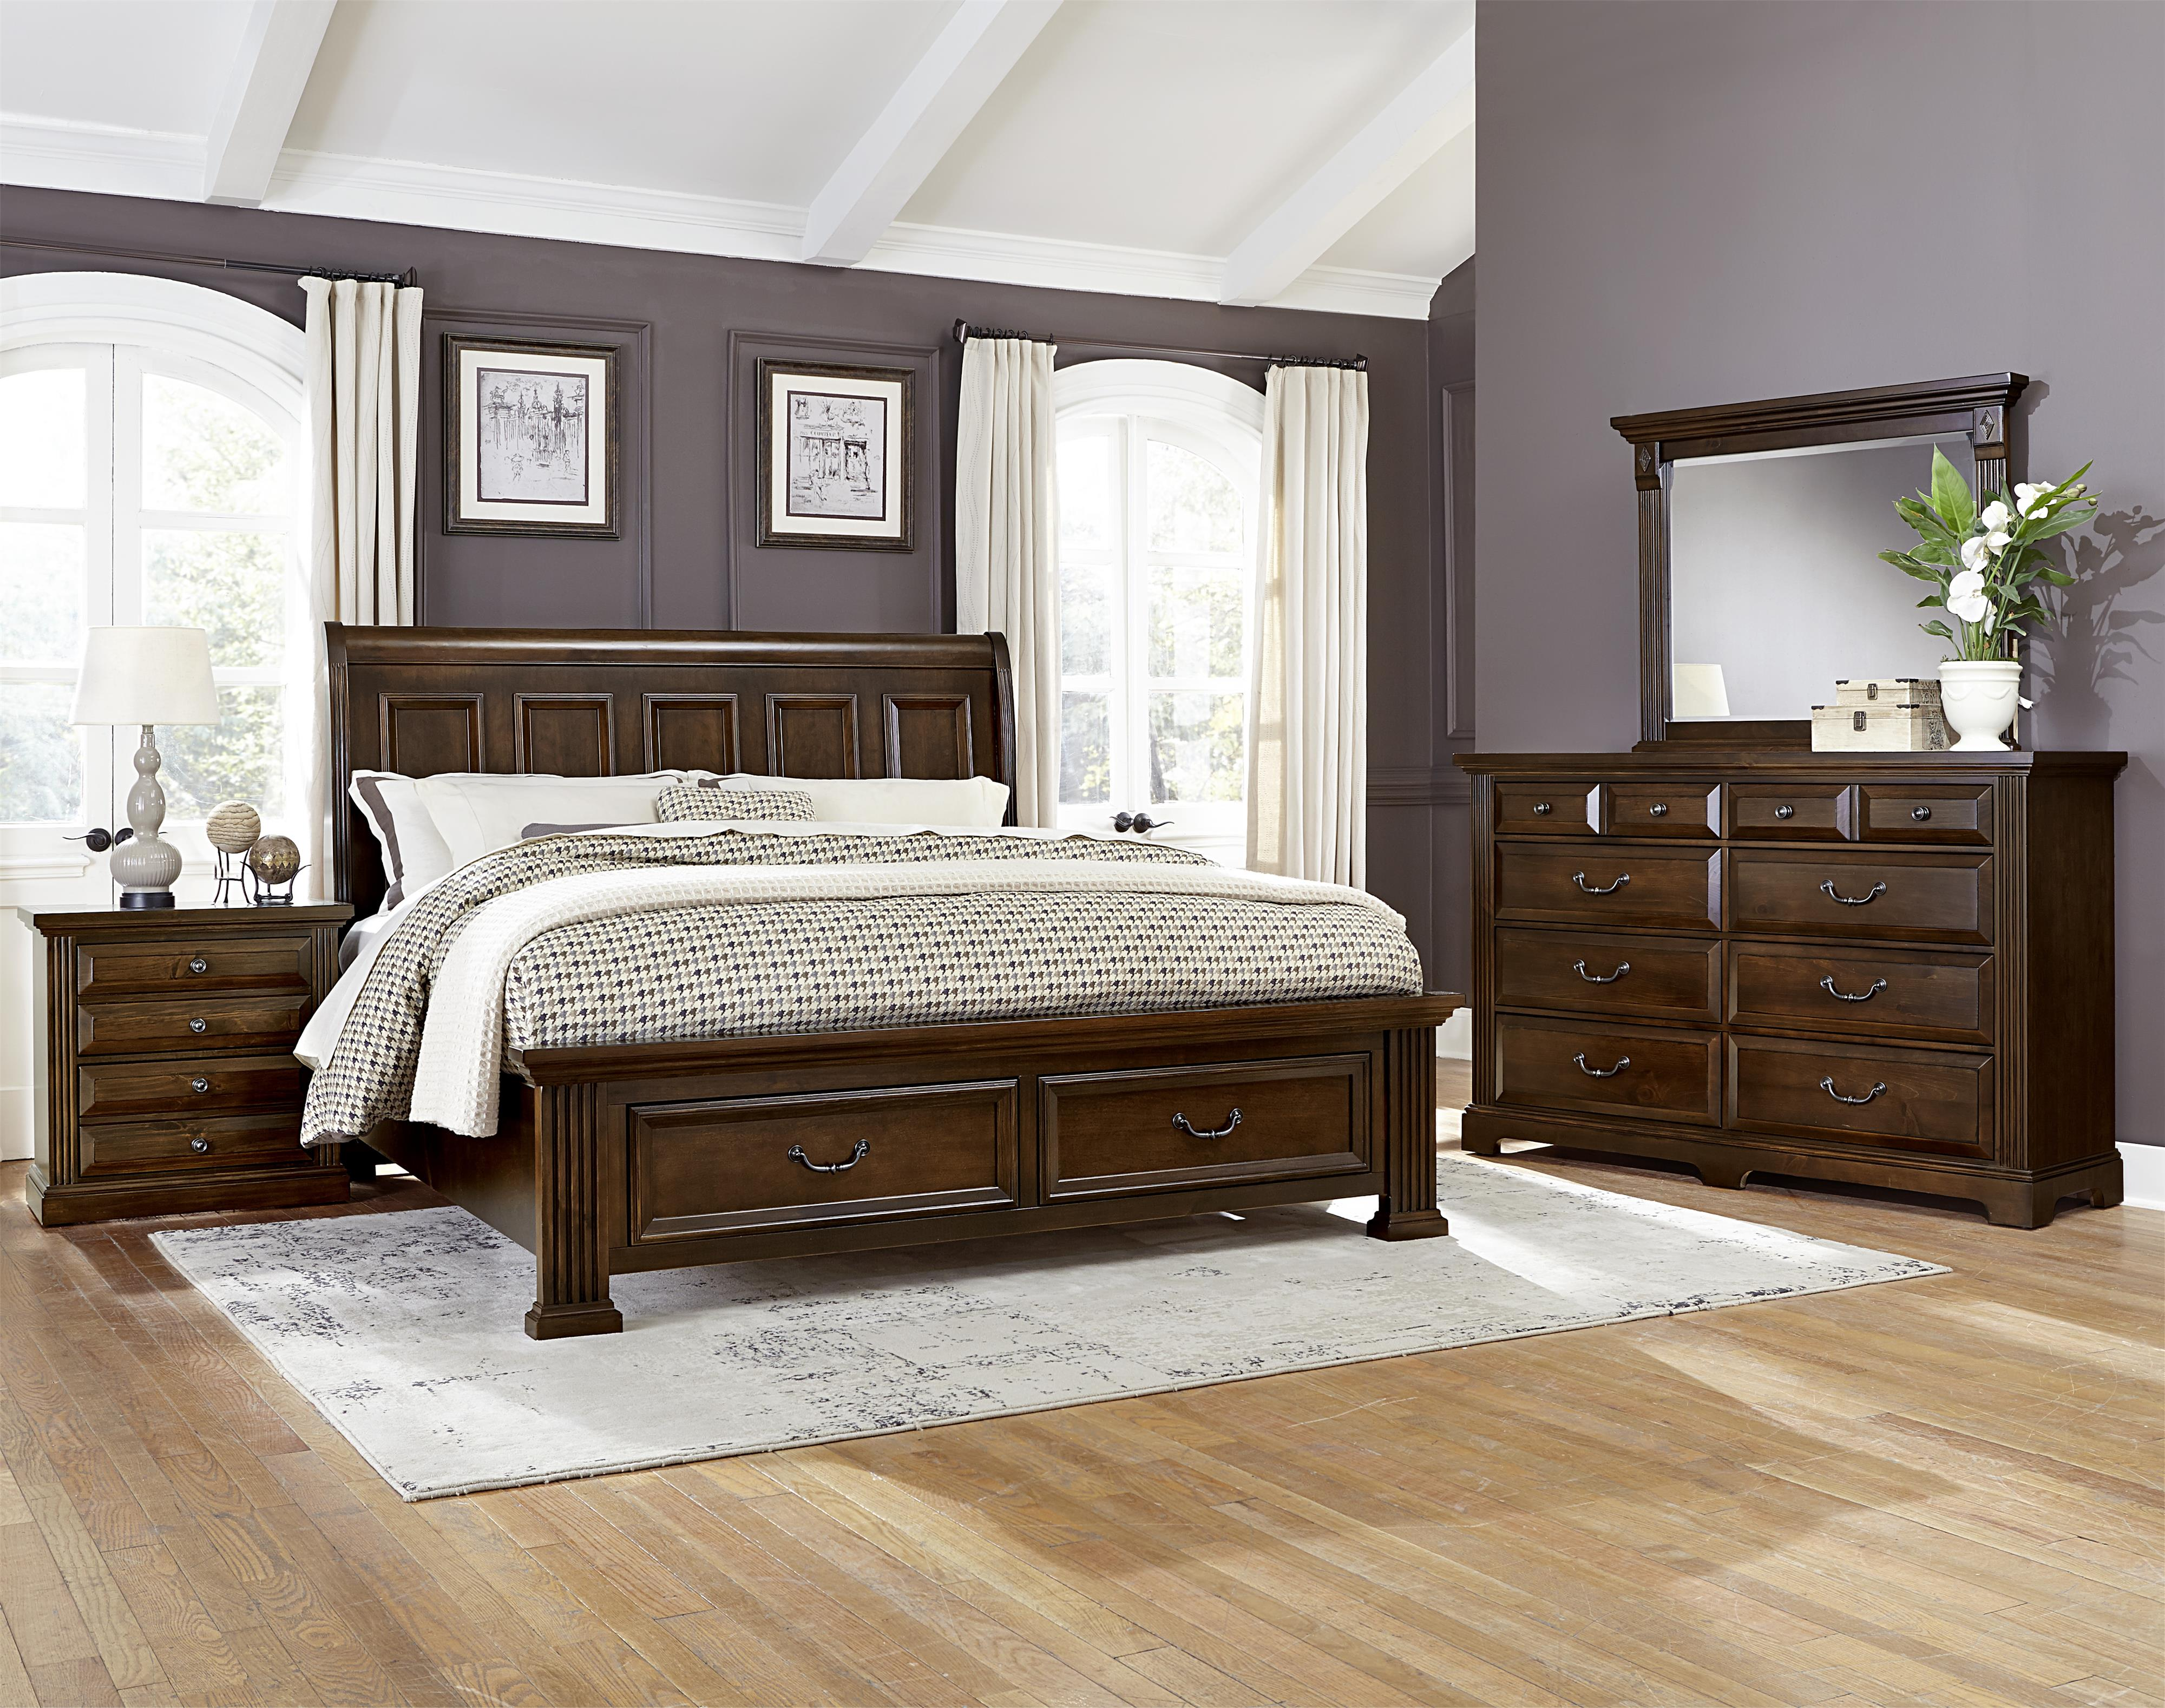 king bedroom iteminformation bassett talsma storage bed furniture upholstered vaughan